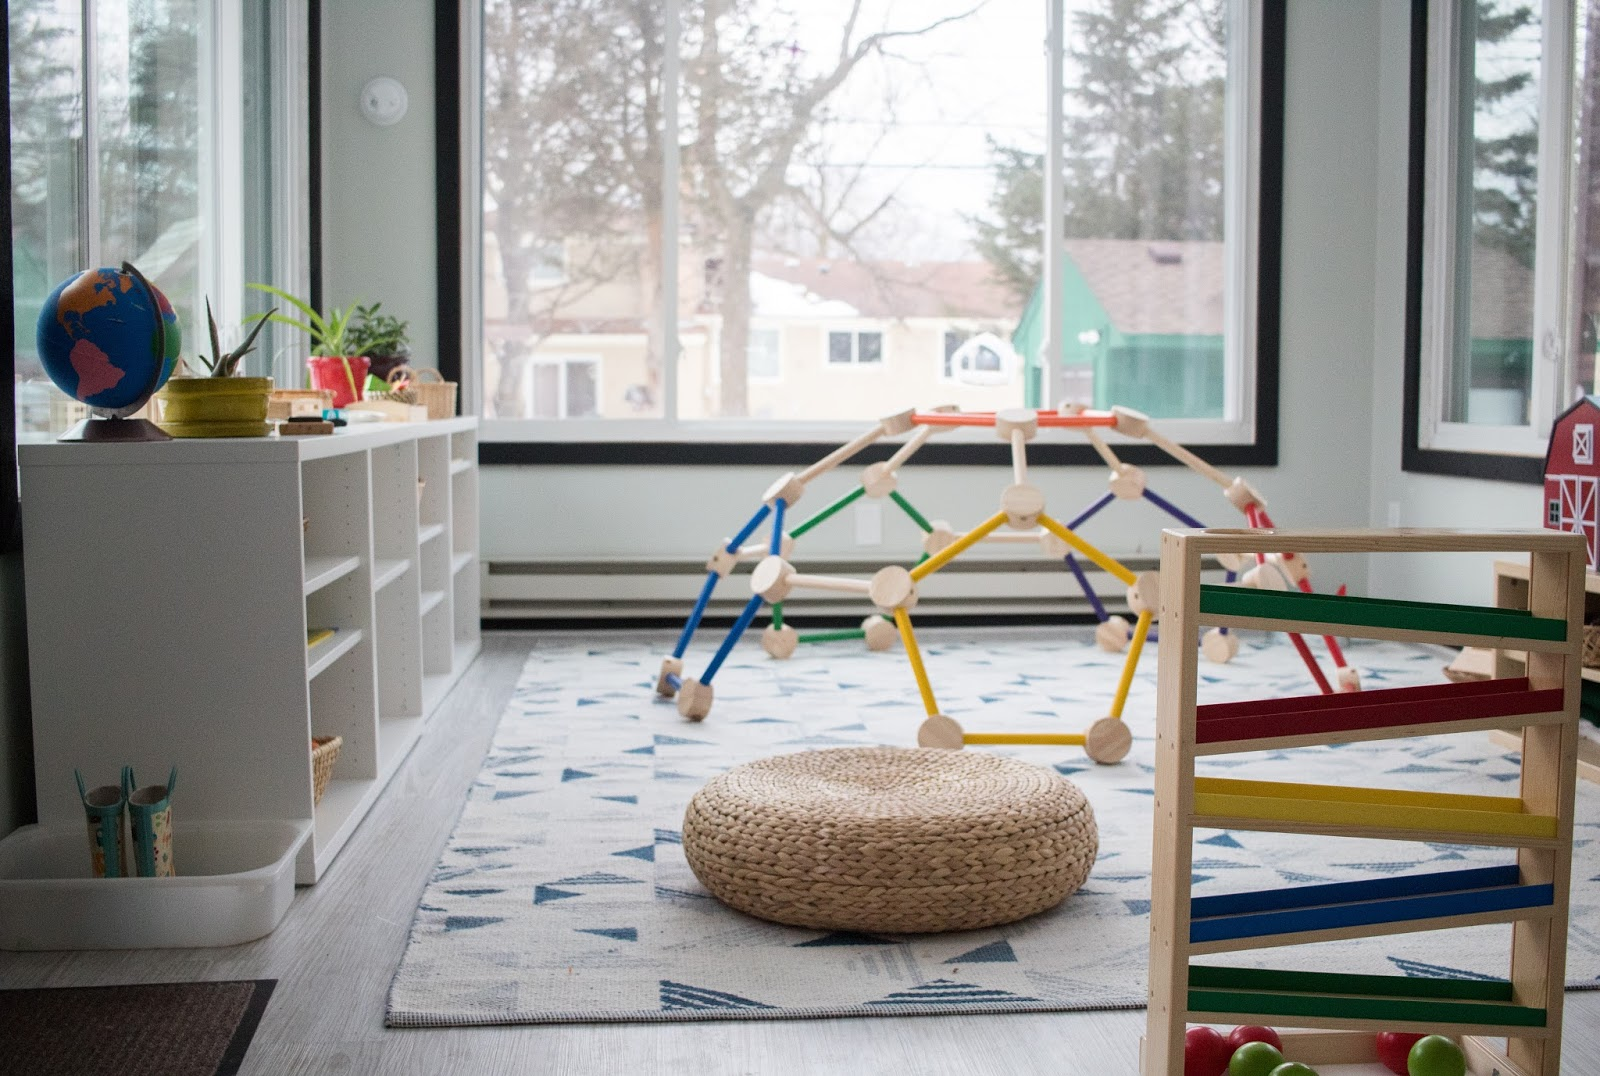 Our Shared Montessori Playroom